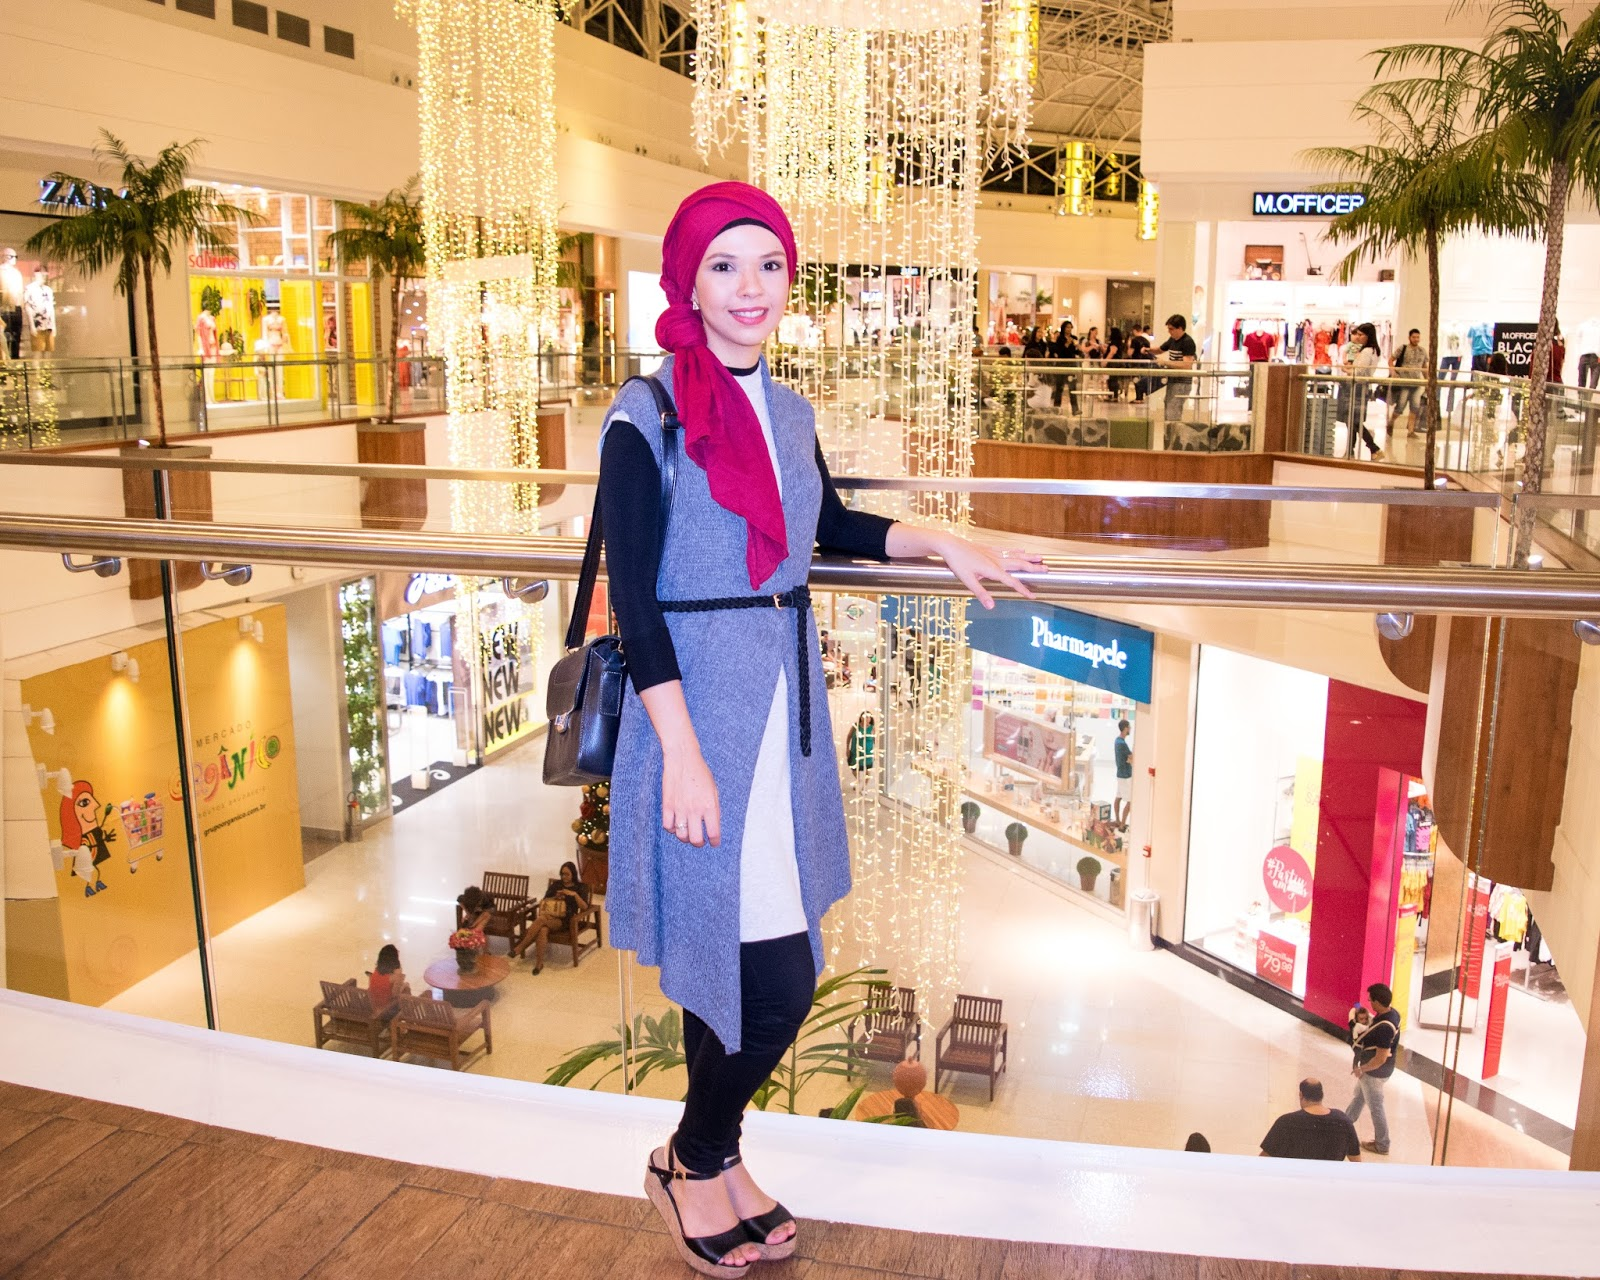 Simplicity in Vogue - @ByAndreaB / OOTD // Quick annoucements + 2 outfits + Festive Lights at the mall - Christmas, decor, mall, shopping, festive lights, ootd, hijab, style, fashion, modesty, modest fashion, modest style, turban, turban style, how to wear, winter fashion, autumn fashion